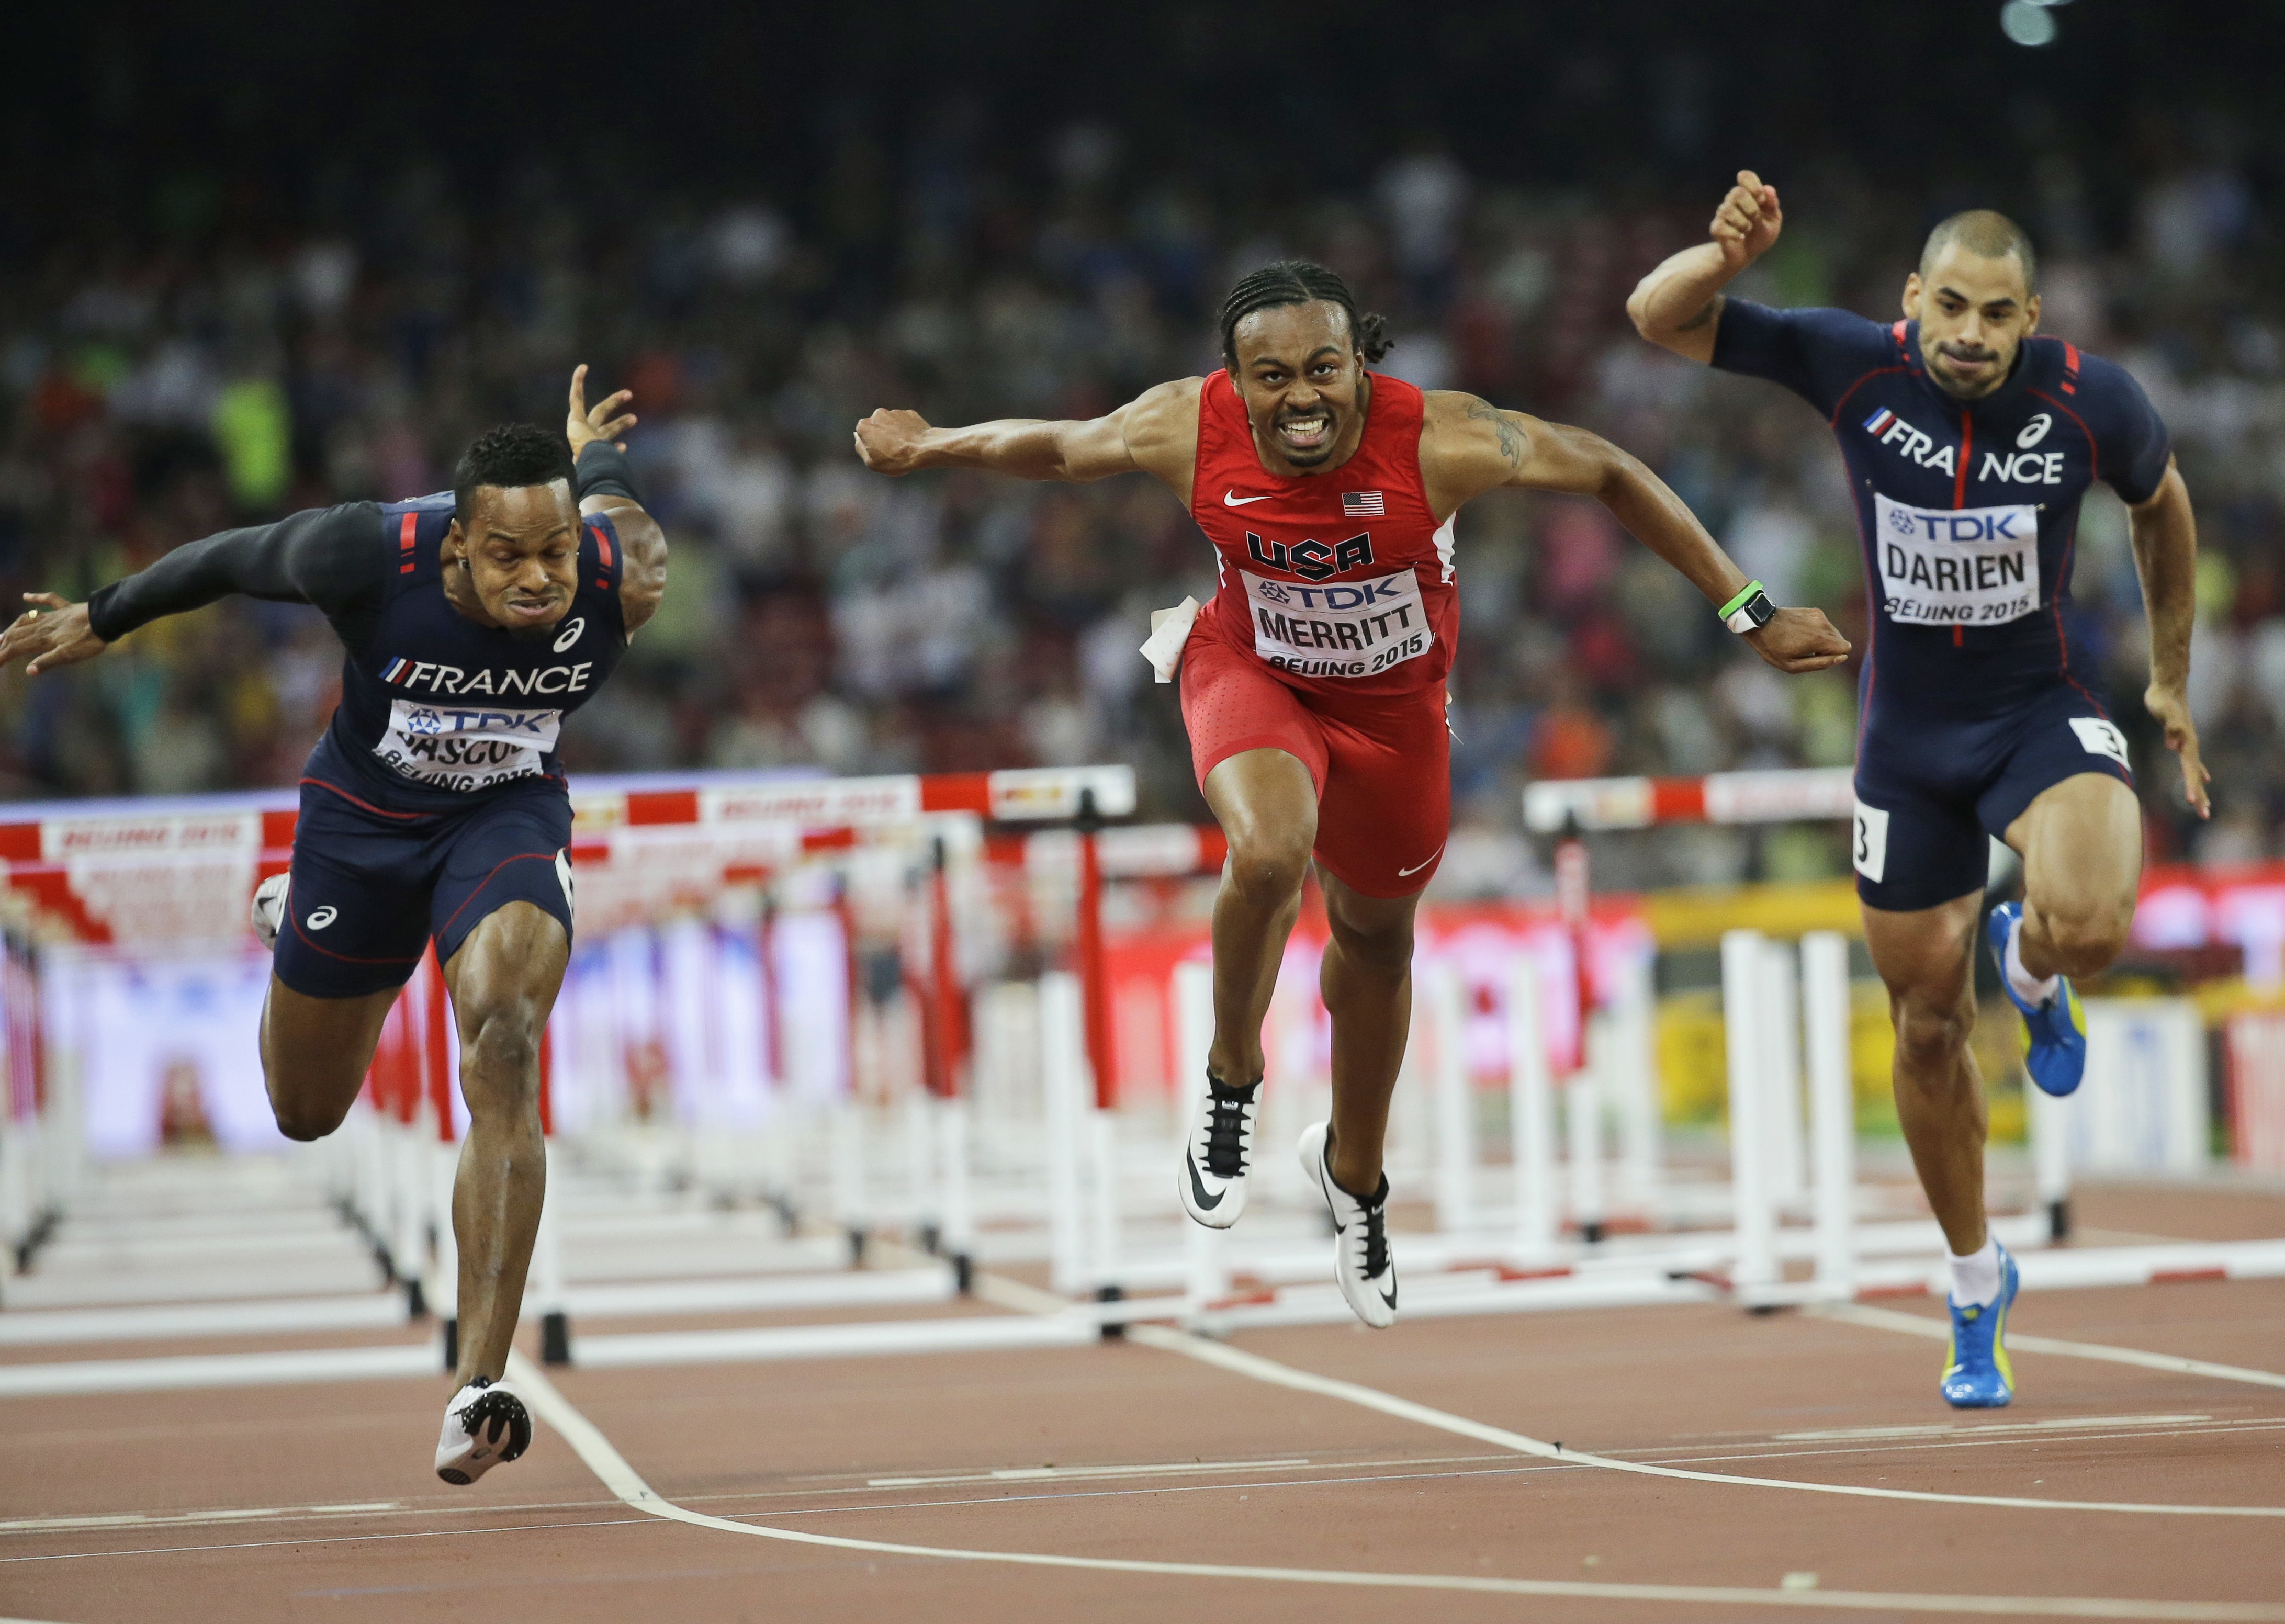 FILE - In this Aug. 28, 2015, file photo, United States' Aries Merritt, center, France's Dimitri Bascou, left, and France's Garfield Darien compete in the men's 110m hurdles final at the World Athletics Championships at the Bird's Nest stadium in Beijing.